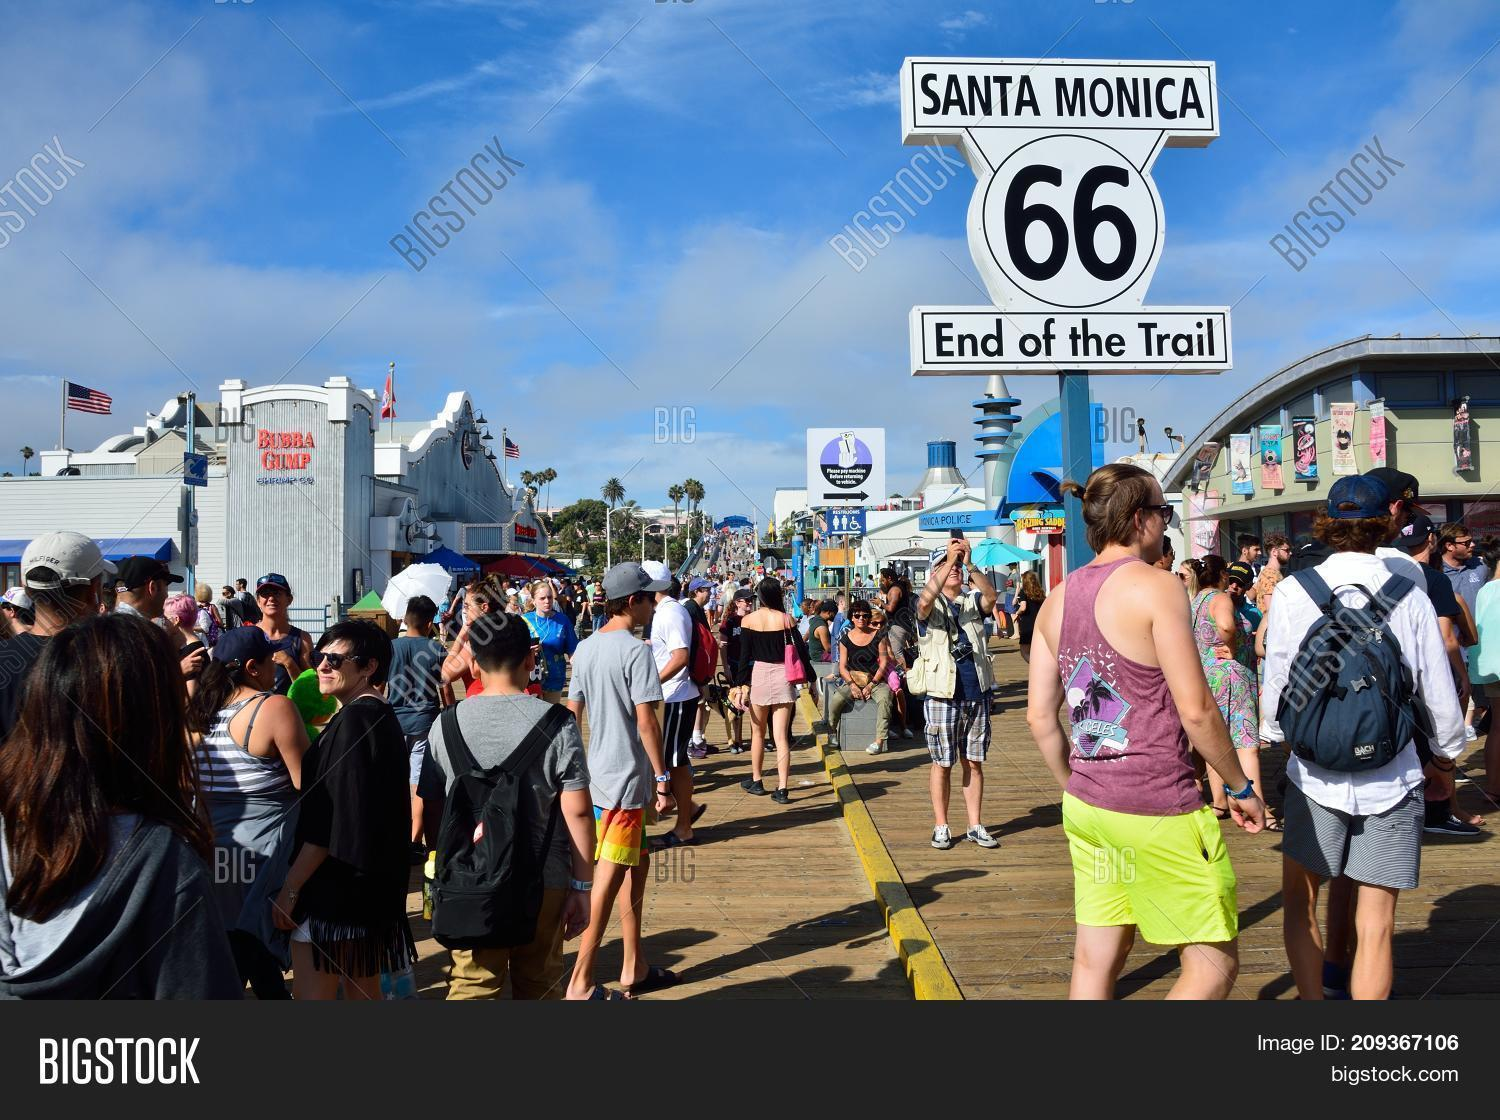 route 66 end sign on image & photo (free trial) | bigstock